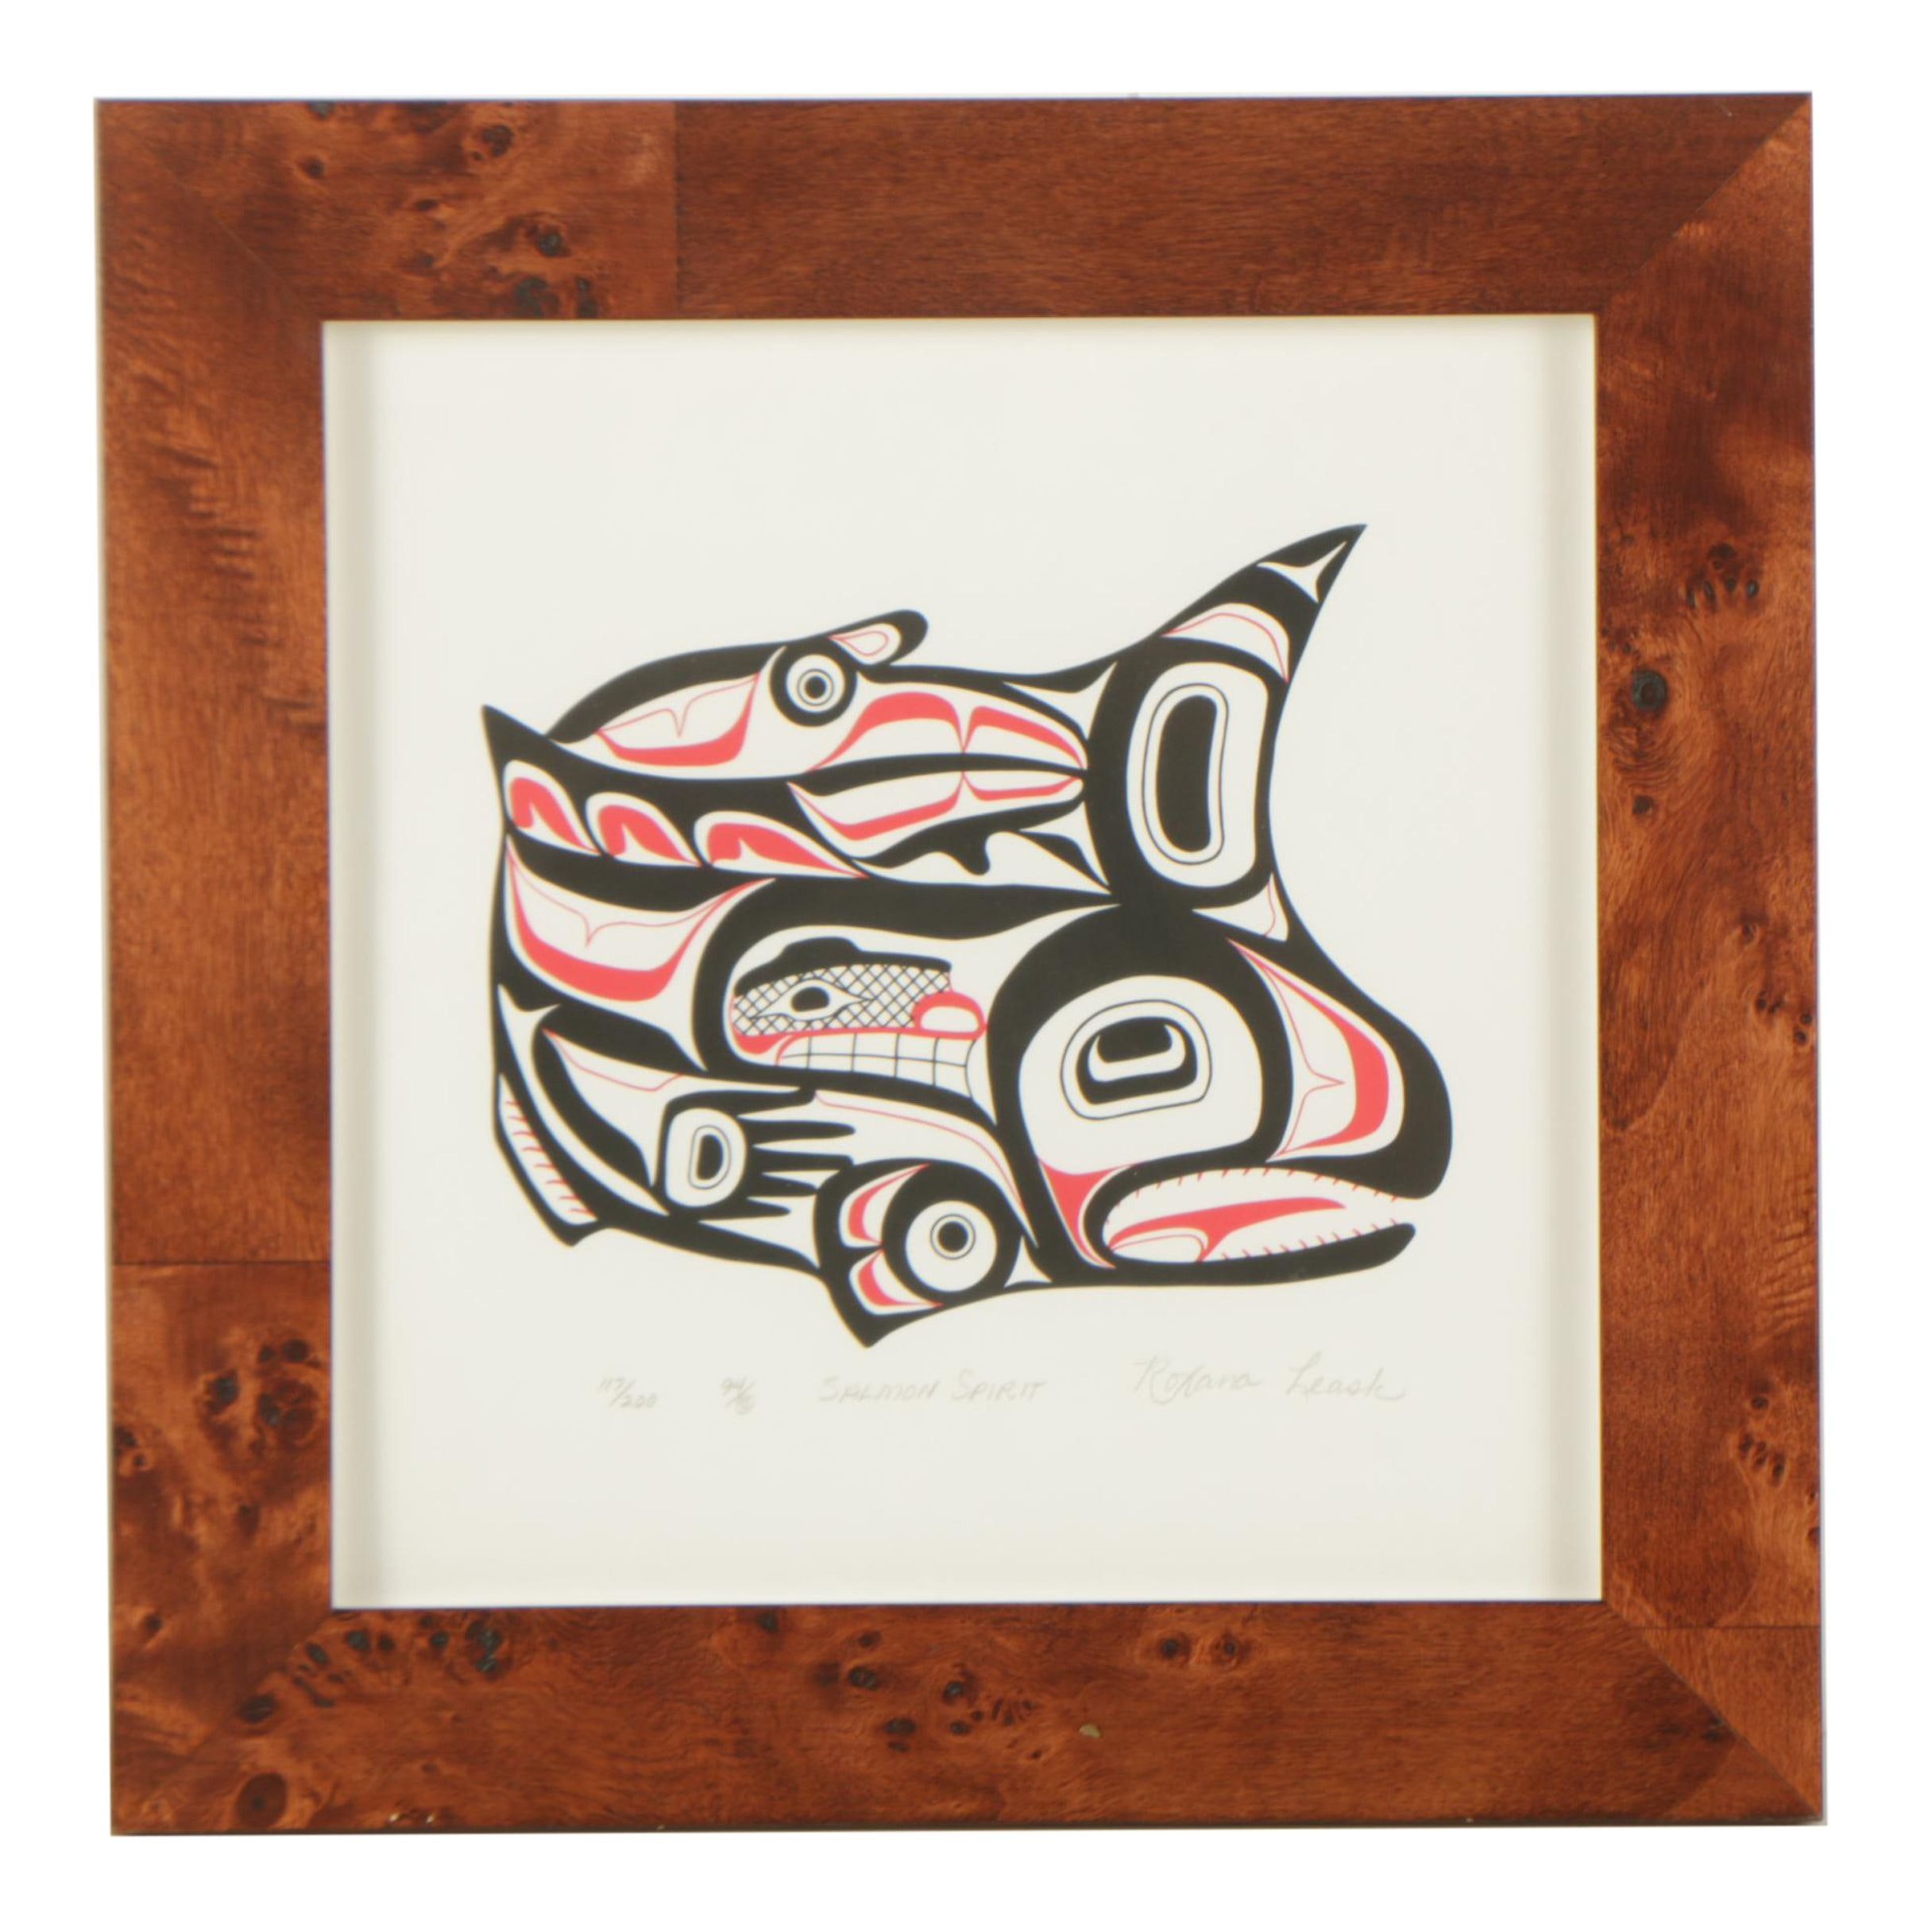 "Roxana Leask 1994 Serigraph of Tsimshian Imagery ""Salmon Spirit"""